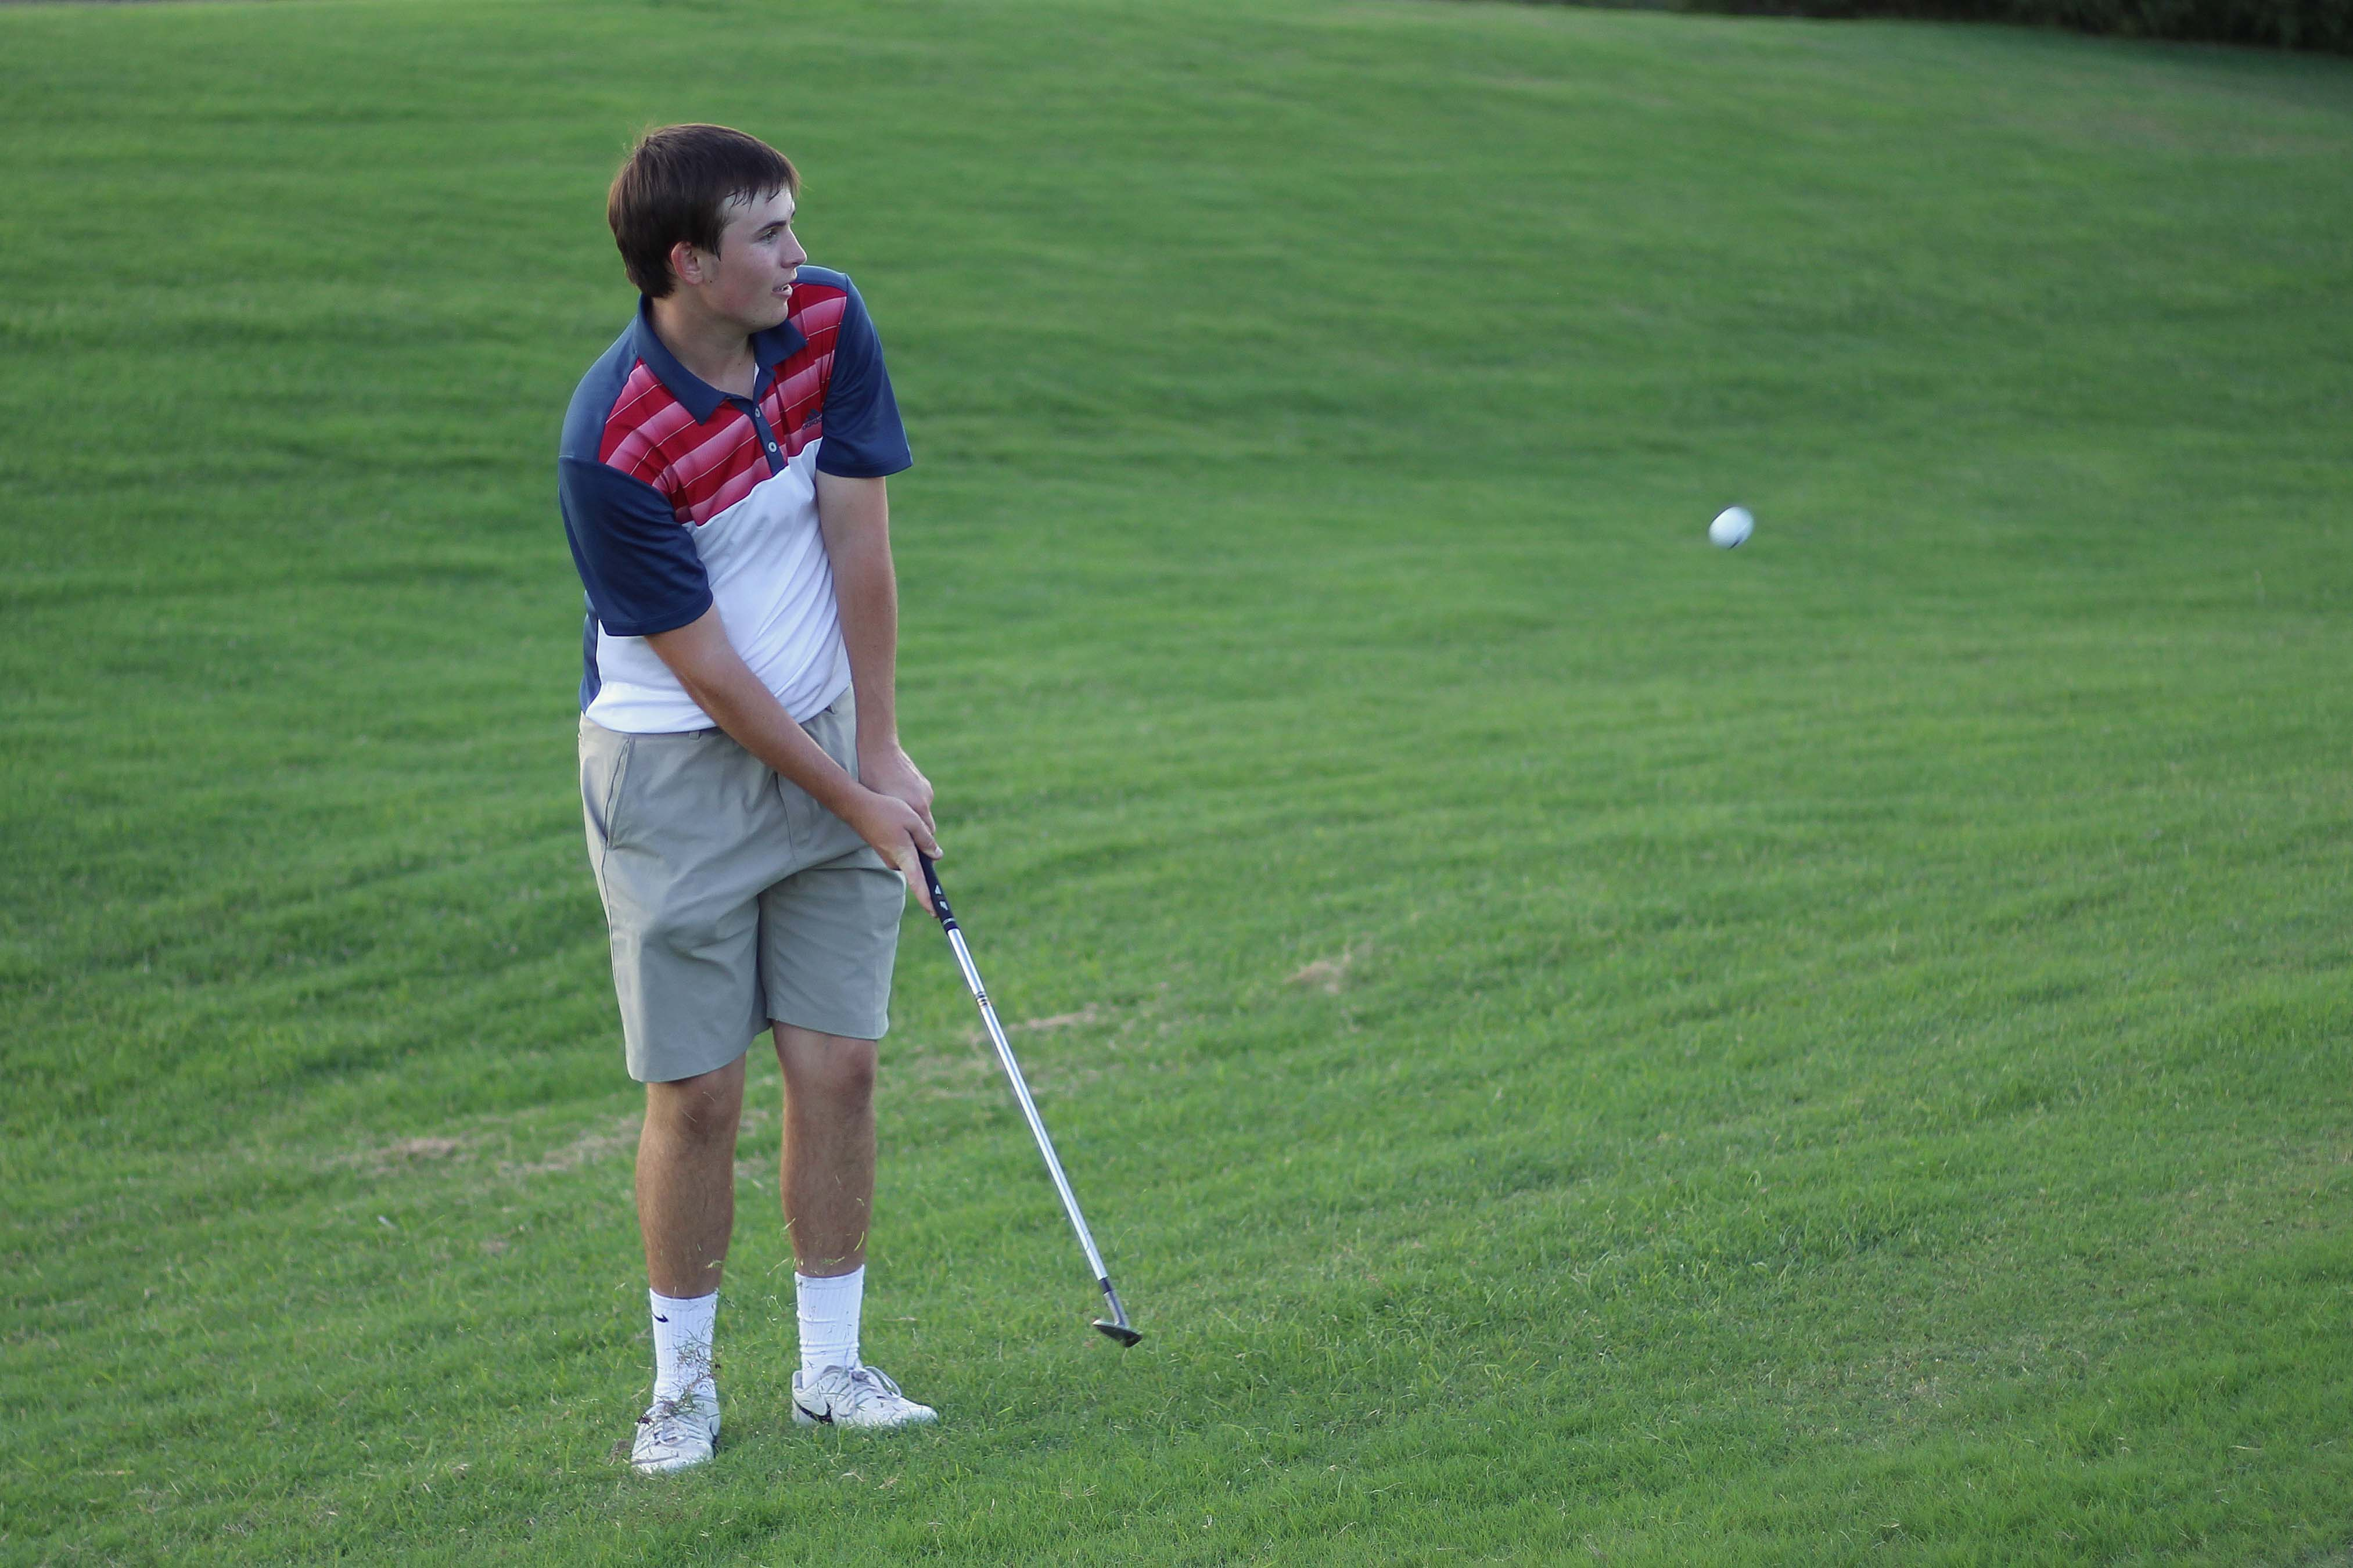 The golf team is preparing for the boys' first tournament of the season on Sept. 26 and the girls' first tournament on Sept. 30.